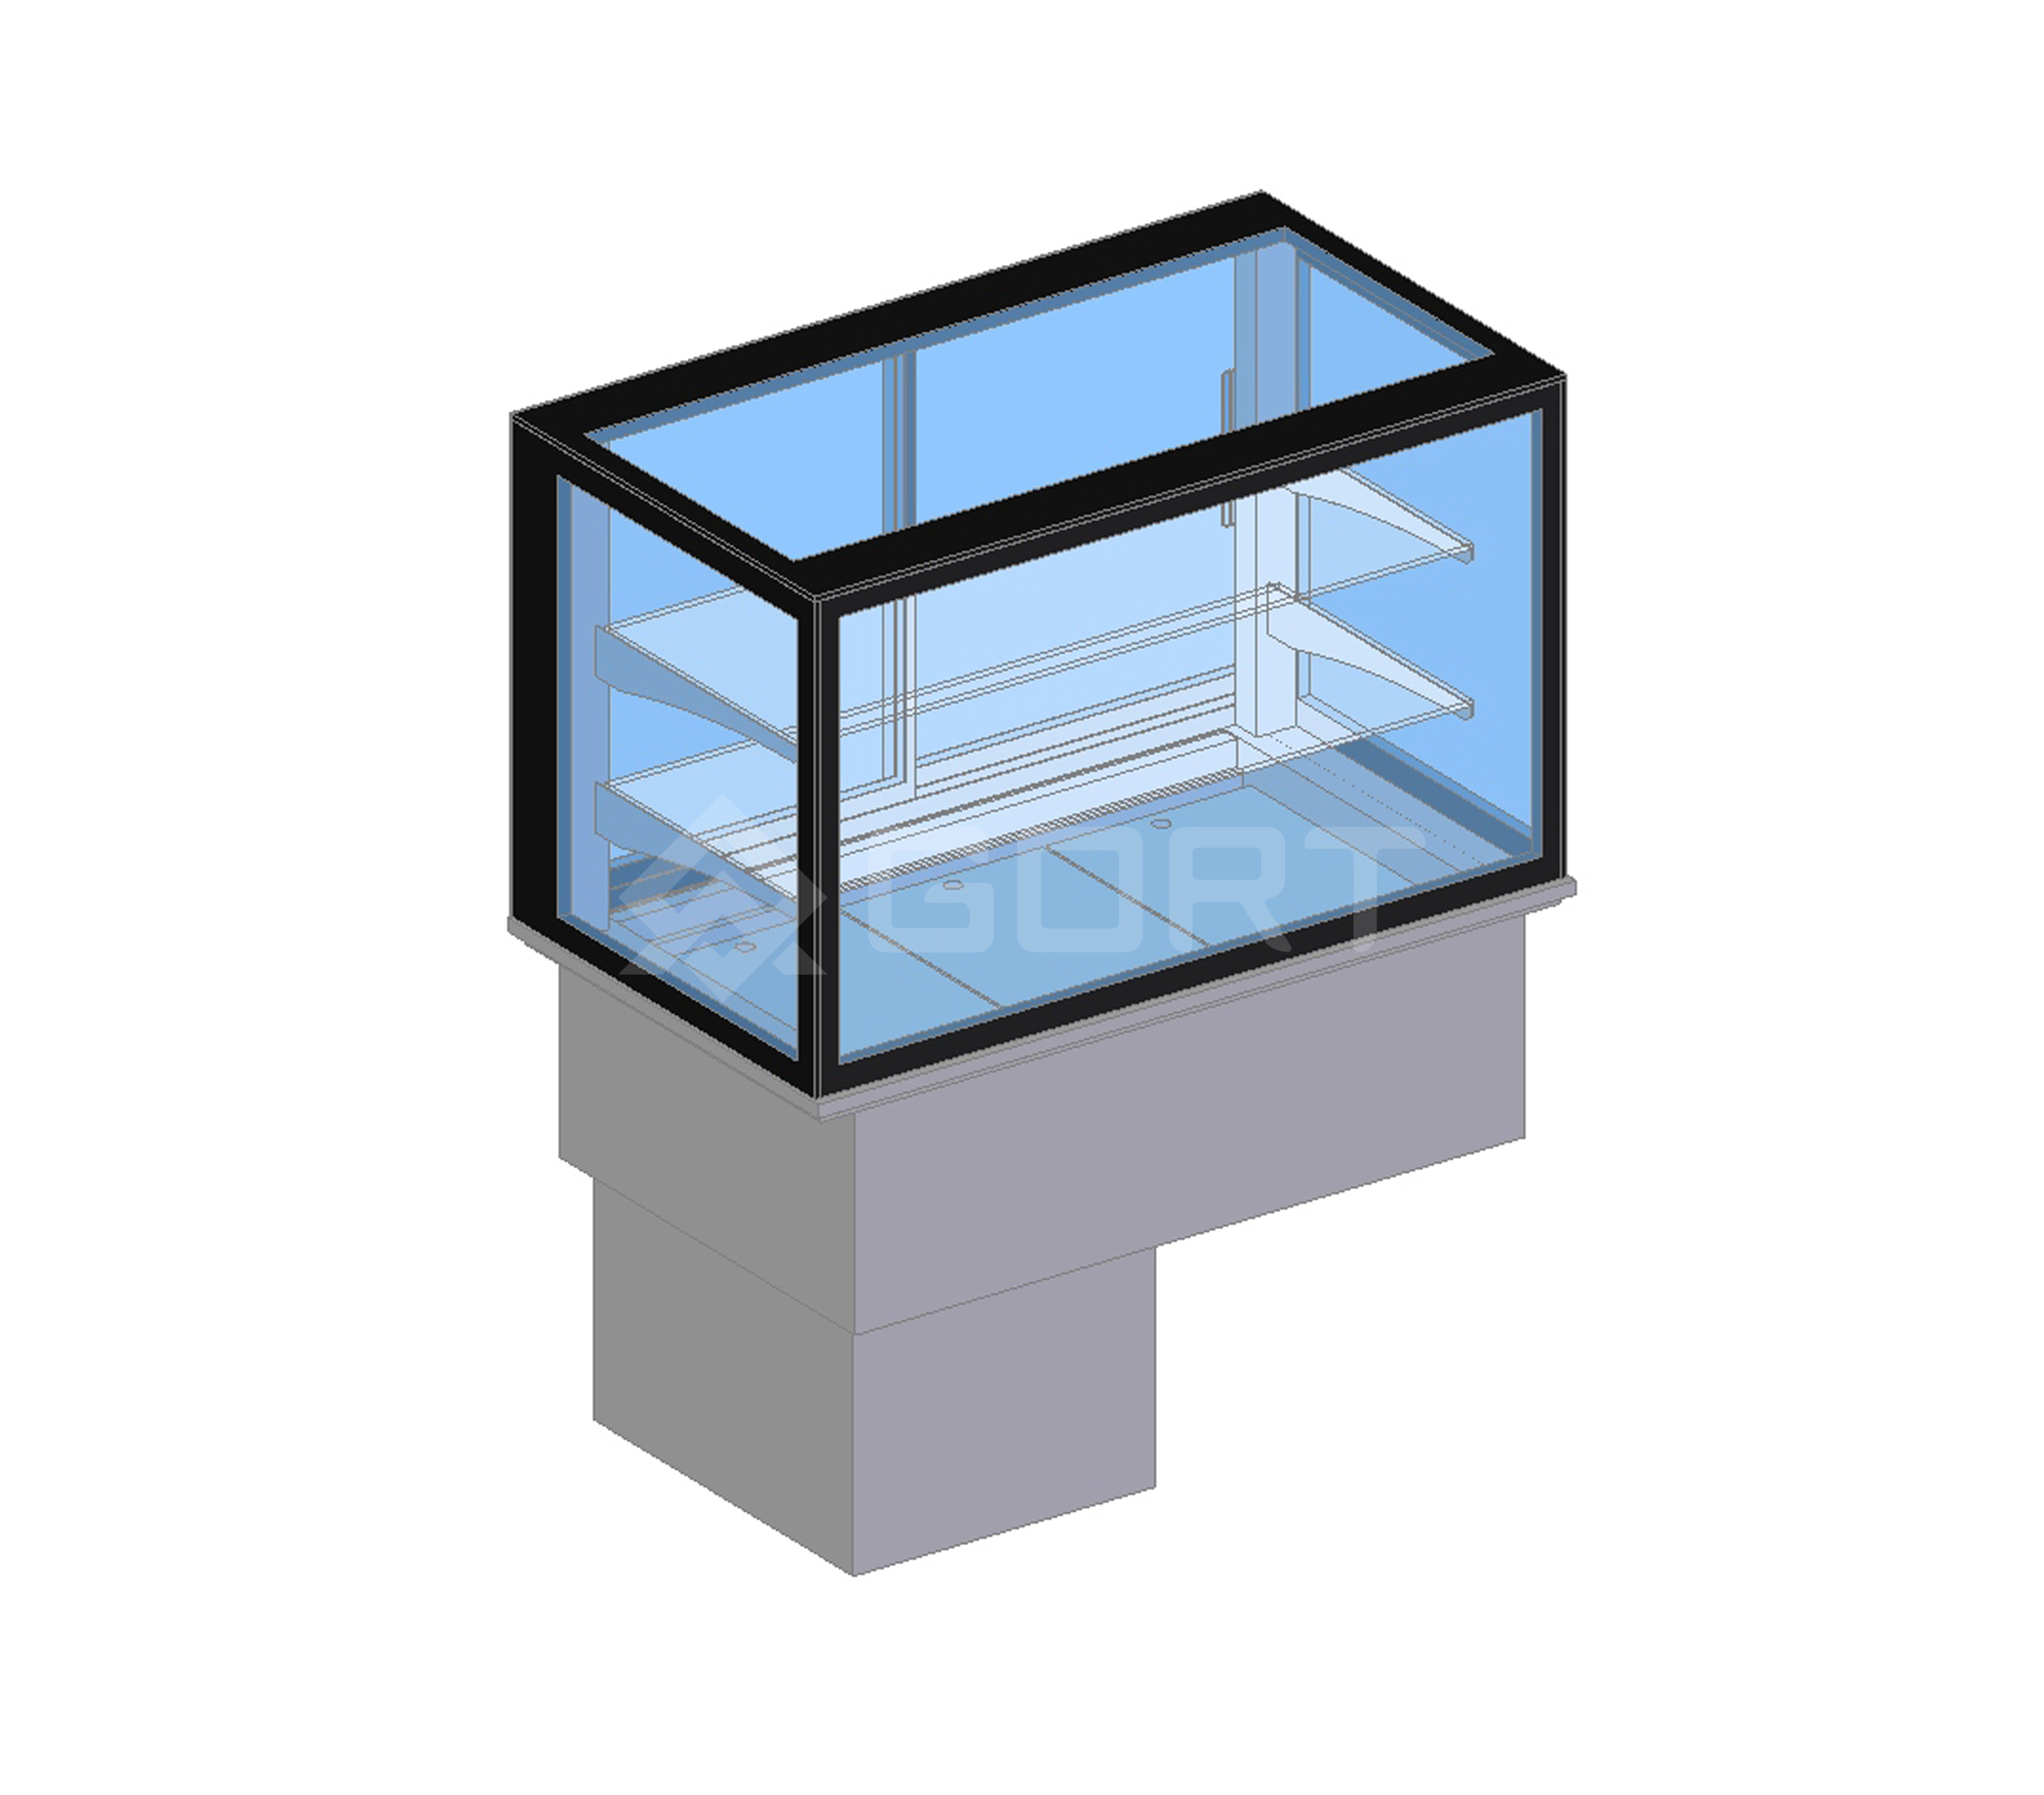 Island refrigerated display DROP-IN, 3 x GN1/1, closed